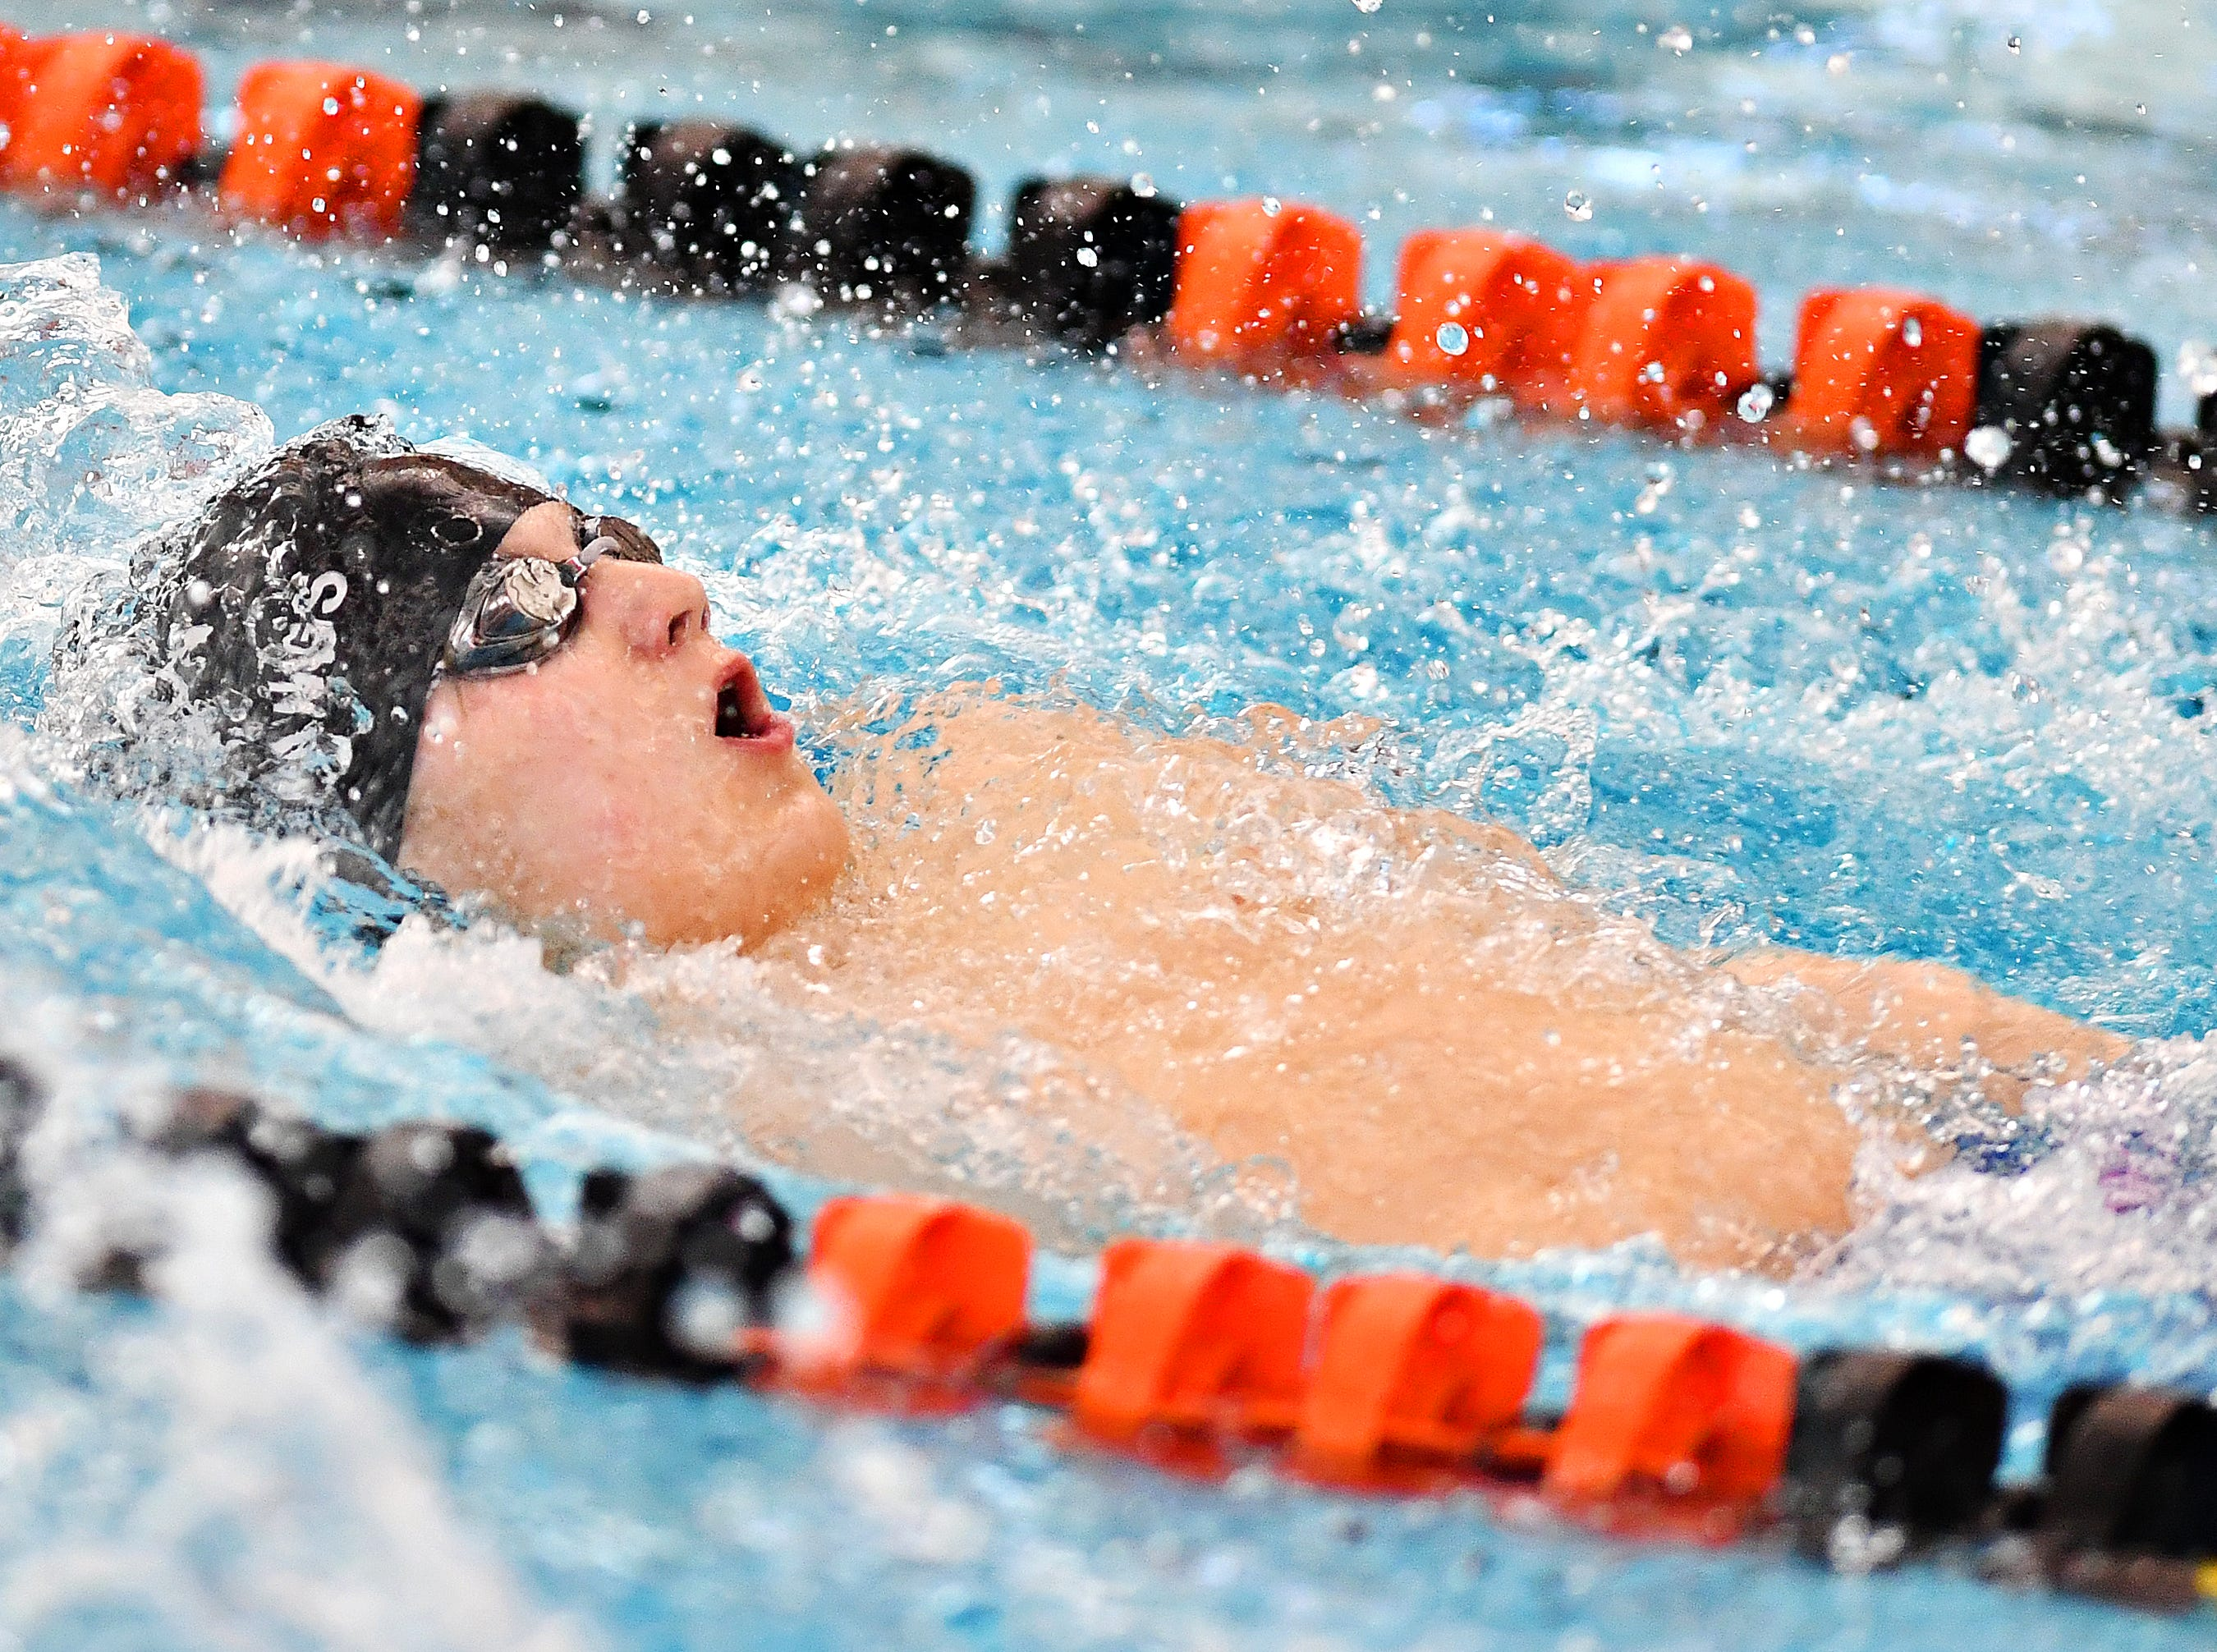 South Western's Jeremy Hargis competes in the 100 Yard Backstroke event during the York-Adams League Swimming Championship at Central York High School in Springettsbury Township, Saturday, Feb. 9, 2019. Dawn J. Sagert photo